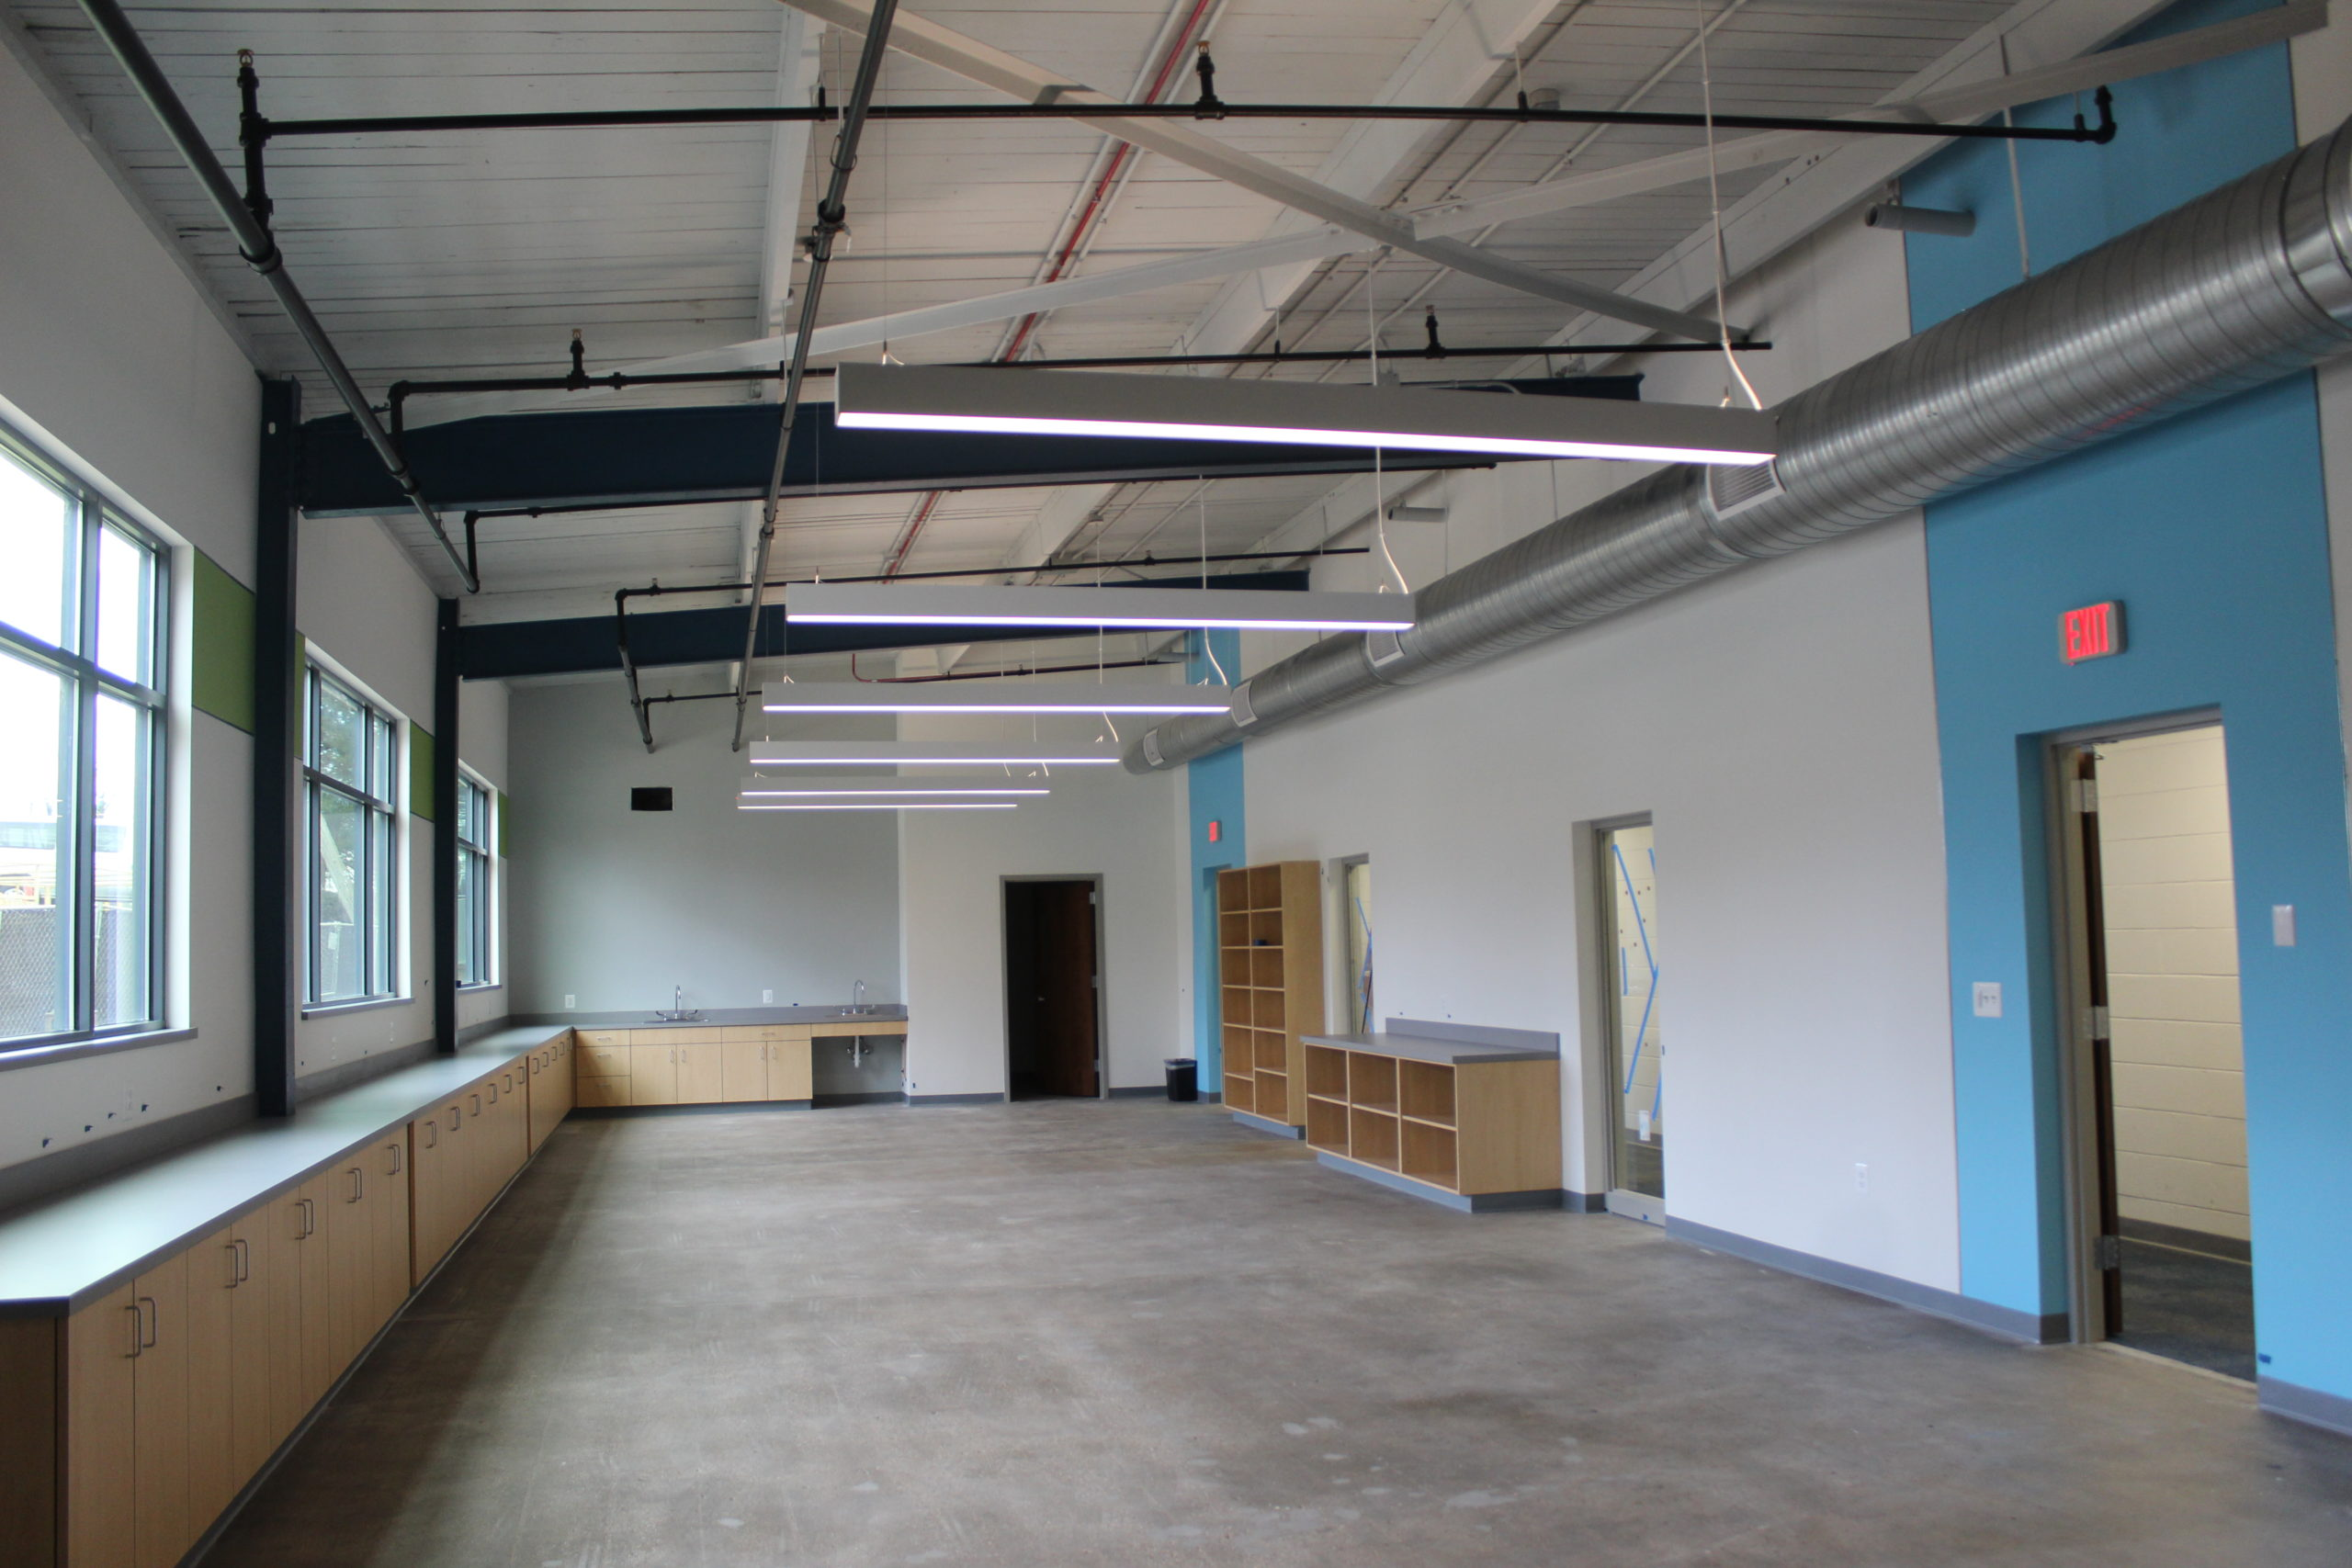 Washington Episcopal School Facilities Renovation